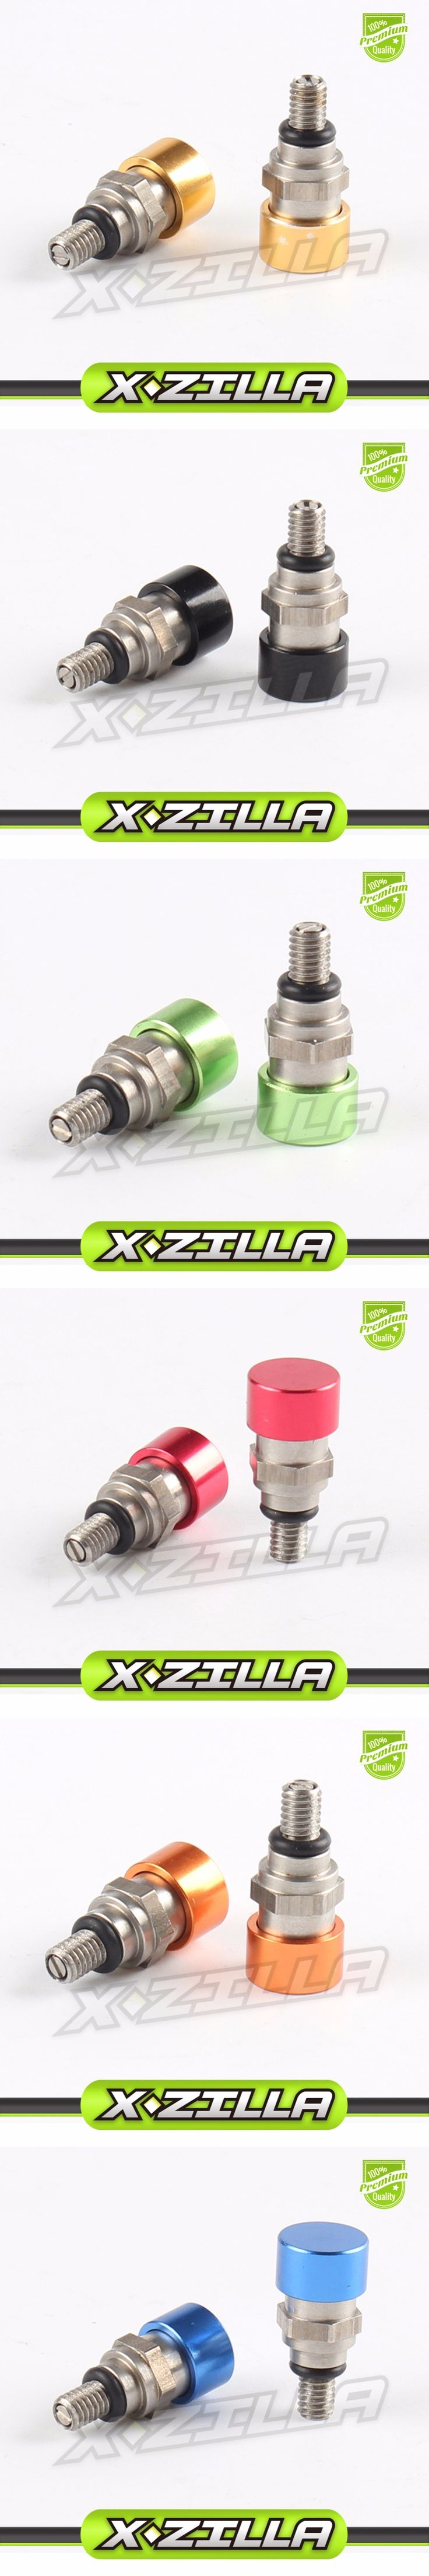 Two pc/pair M4*0.7mm Fork Bleeder Relief Valve Fork Relief Valve For SX SXF EXC XCW SMR SMCR Dirt Bike MX Motocross